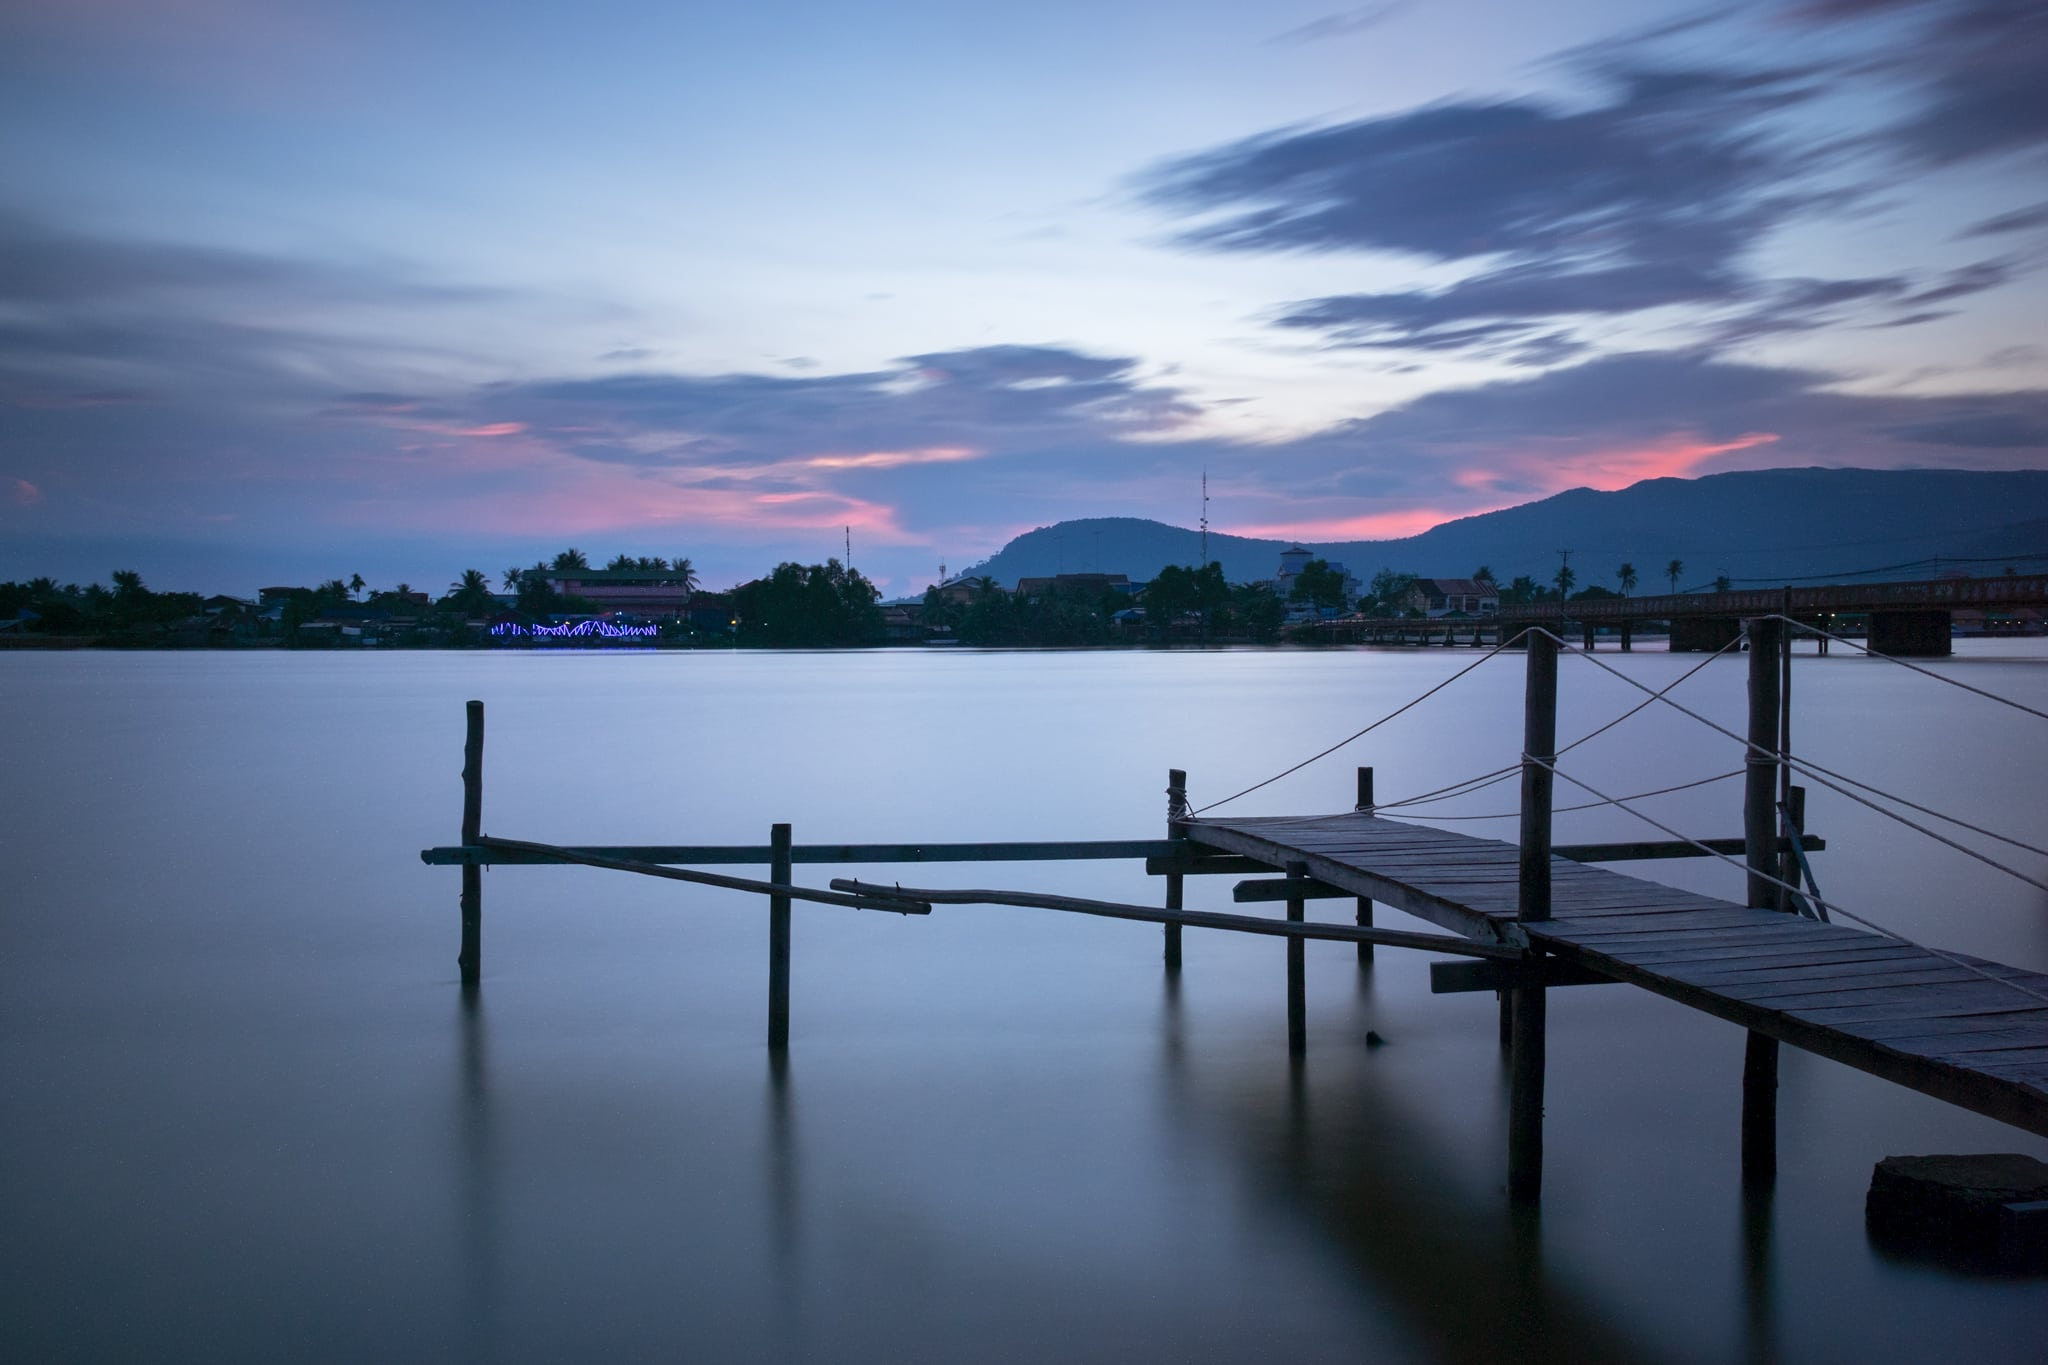 Wooden pier on Kampot River in twilight. Kampot, Cambodia. Water and clouds look smooth and silky because of the long exposure.